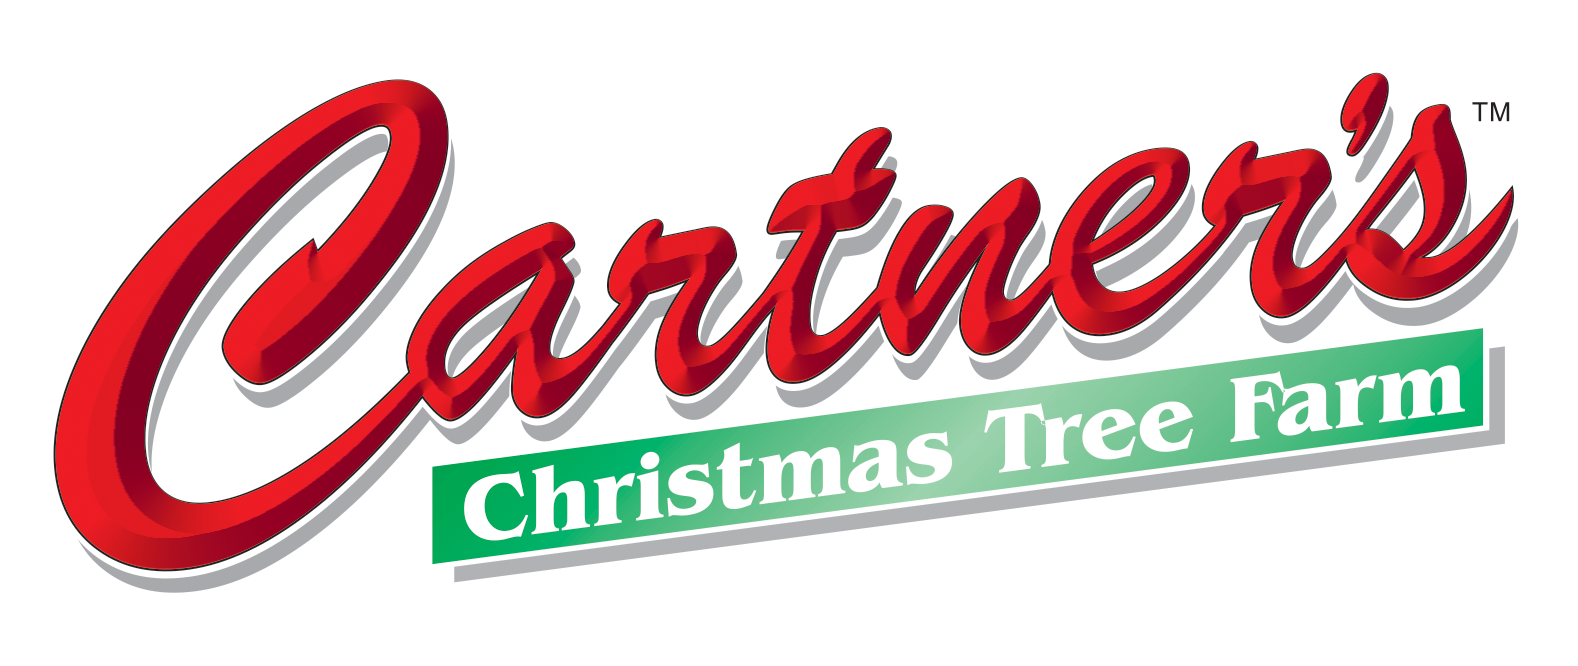 Cartner Christmas Tree Farm | Mail Order Home